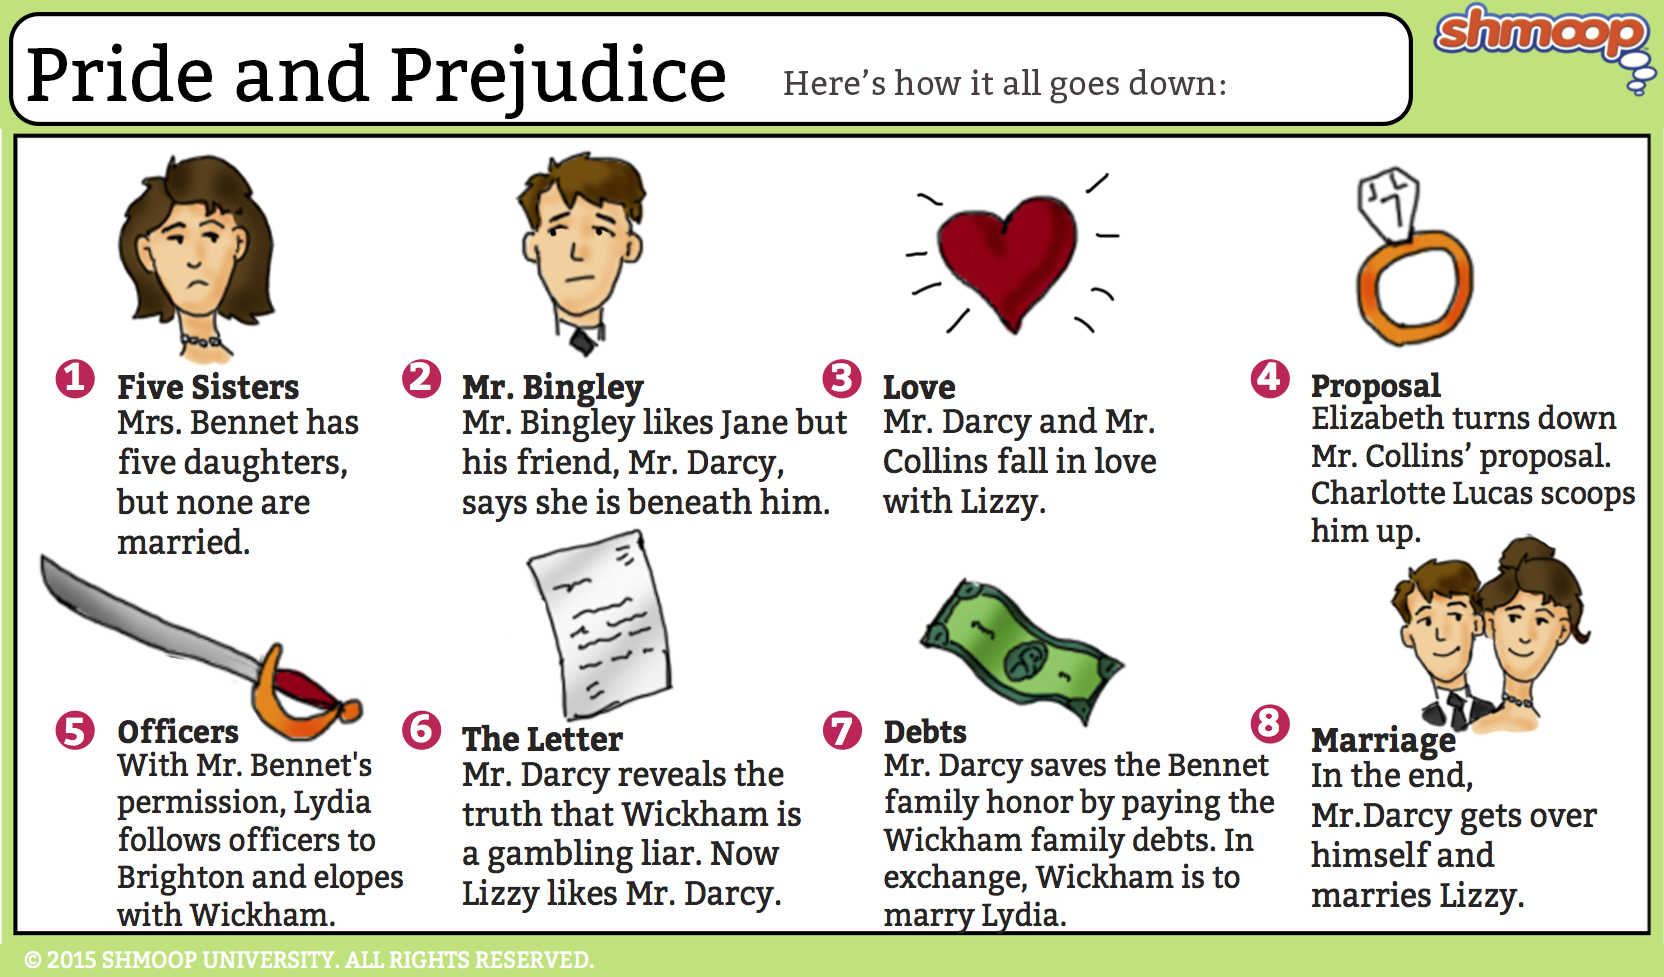 pride and prejudice by jane austen analysis essay Writing an essay on pride and prejudice pride and prejudice an analysis pride and prejudice, jane austen.